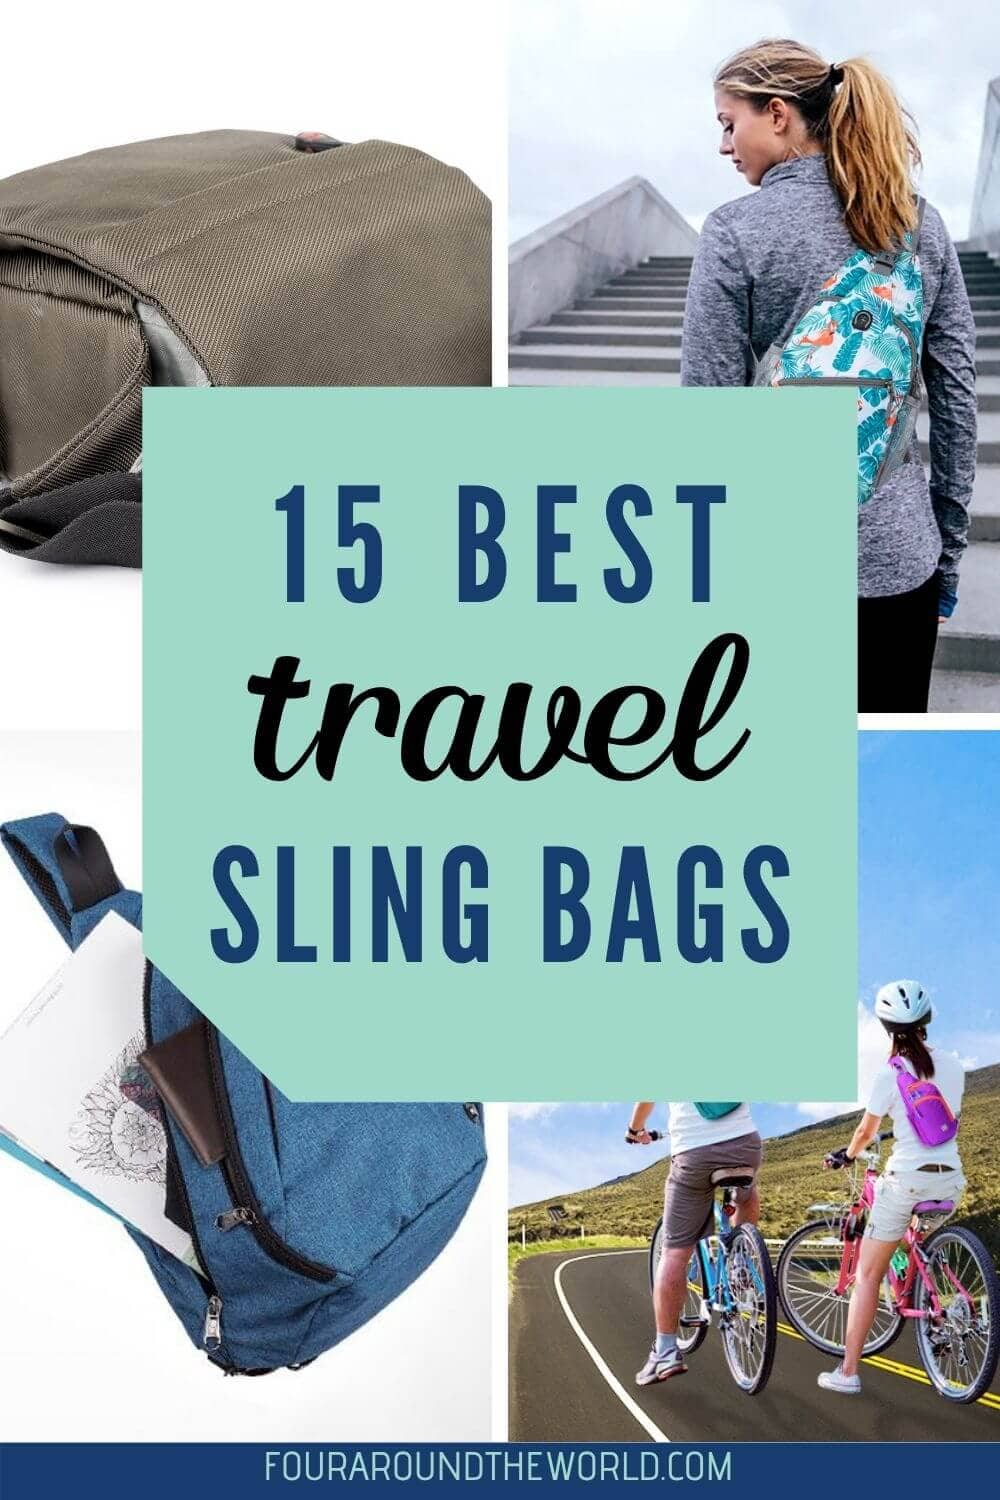 best sling bags for travel crossover bags men and women